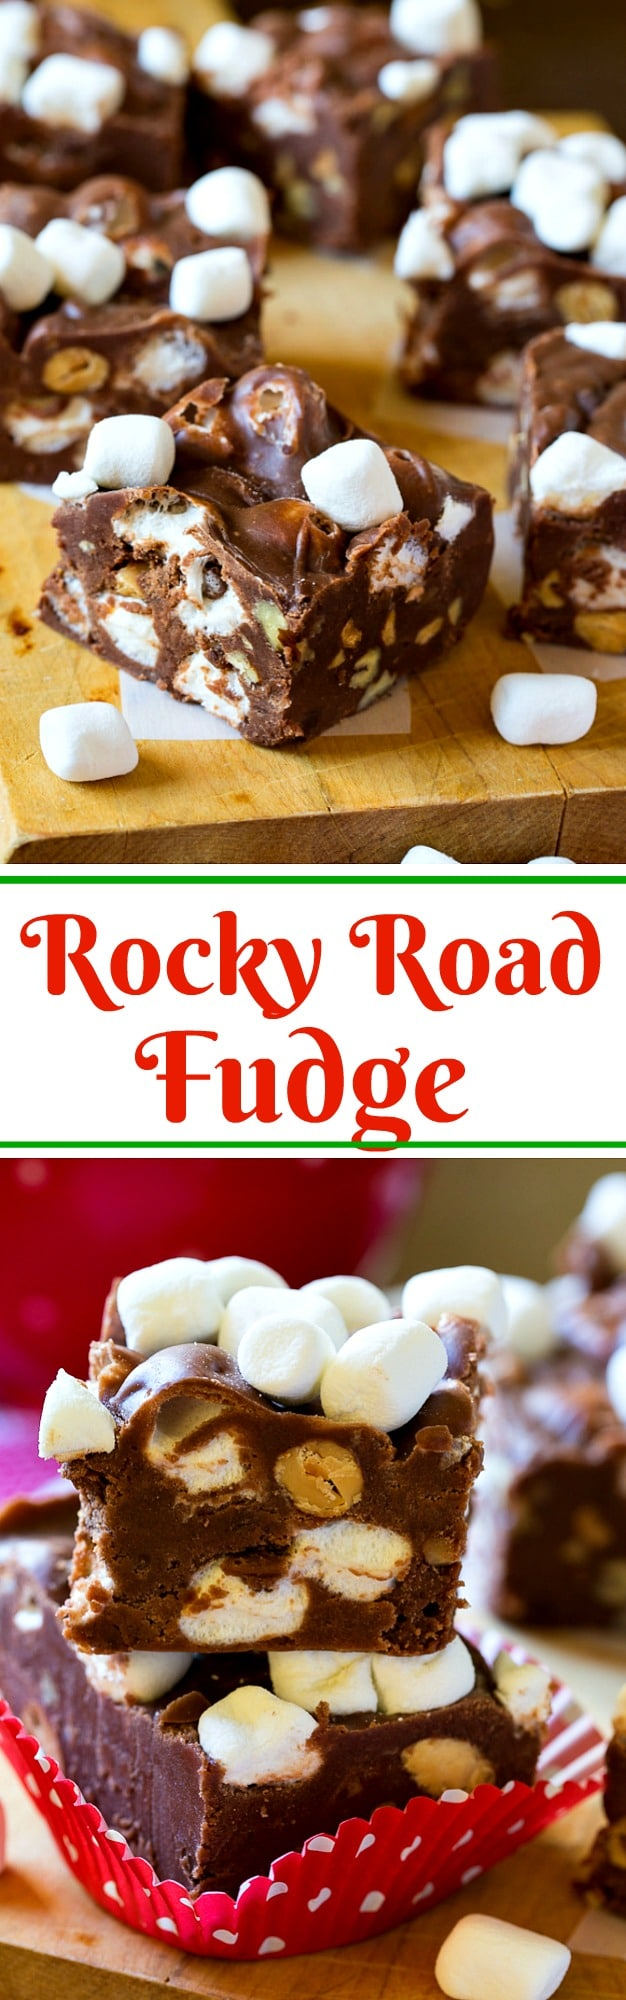 Rocky Road Fudge - Spicy Southern Kitchen